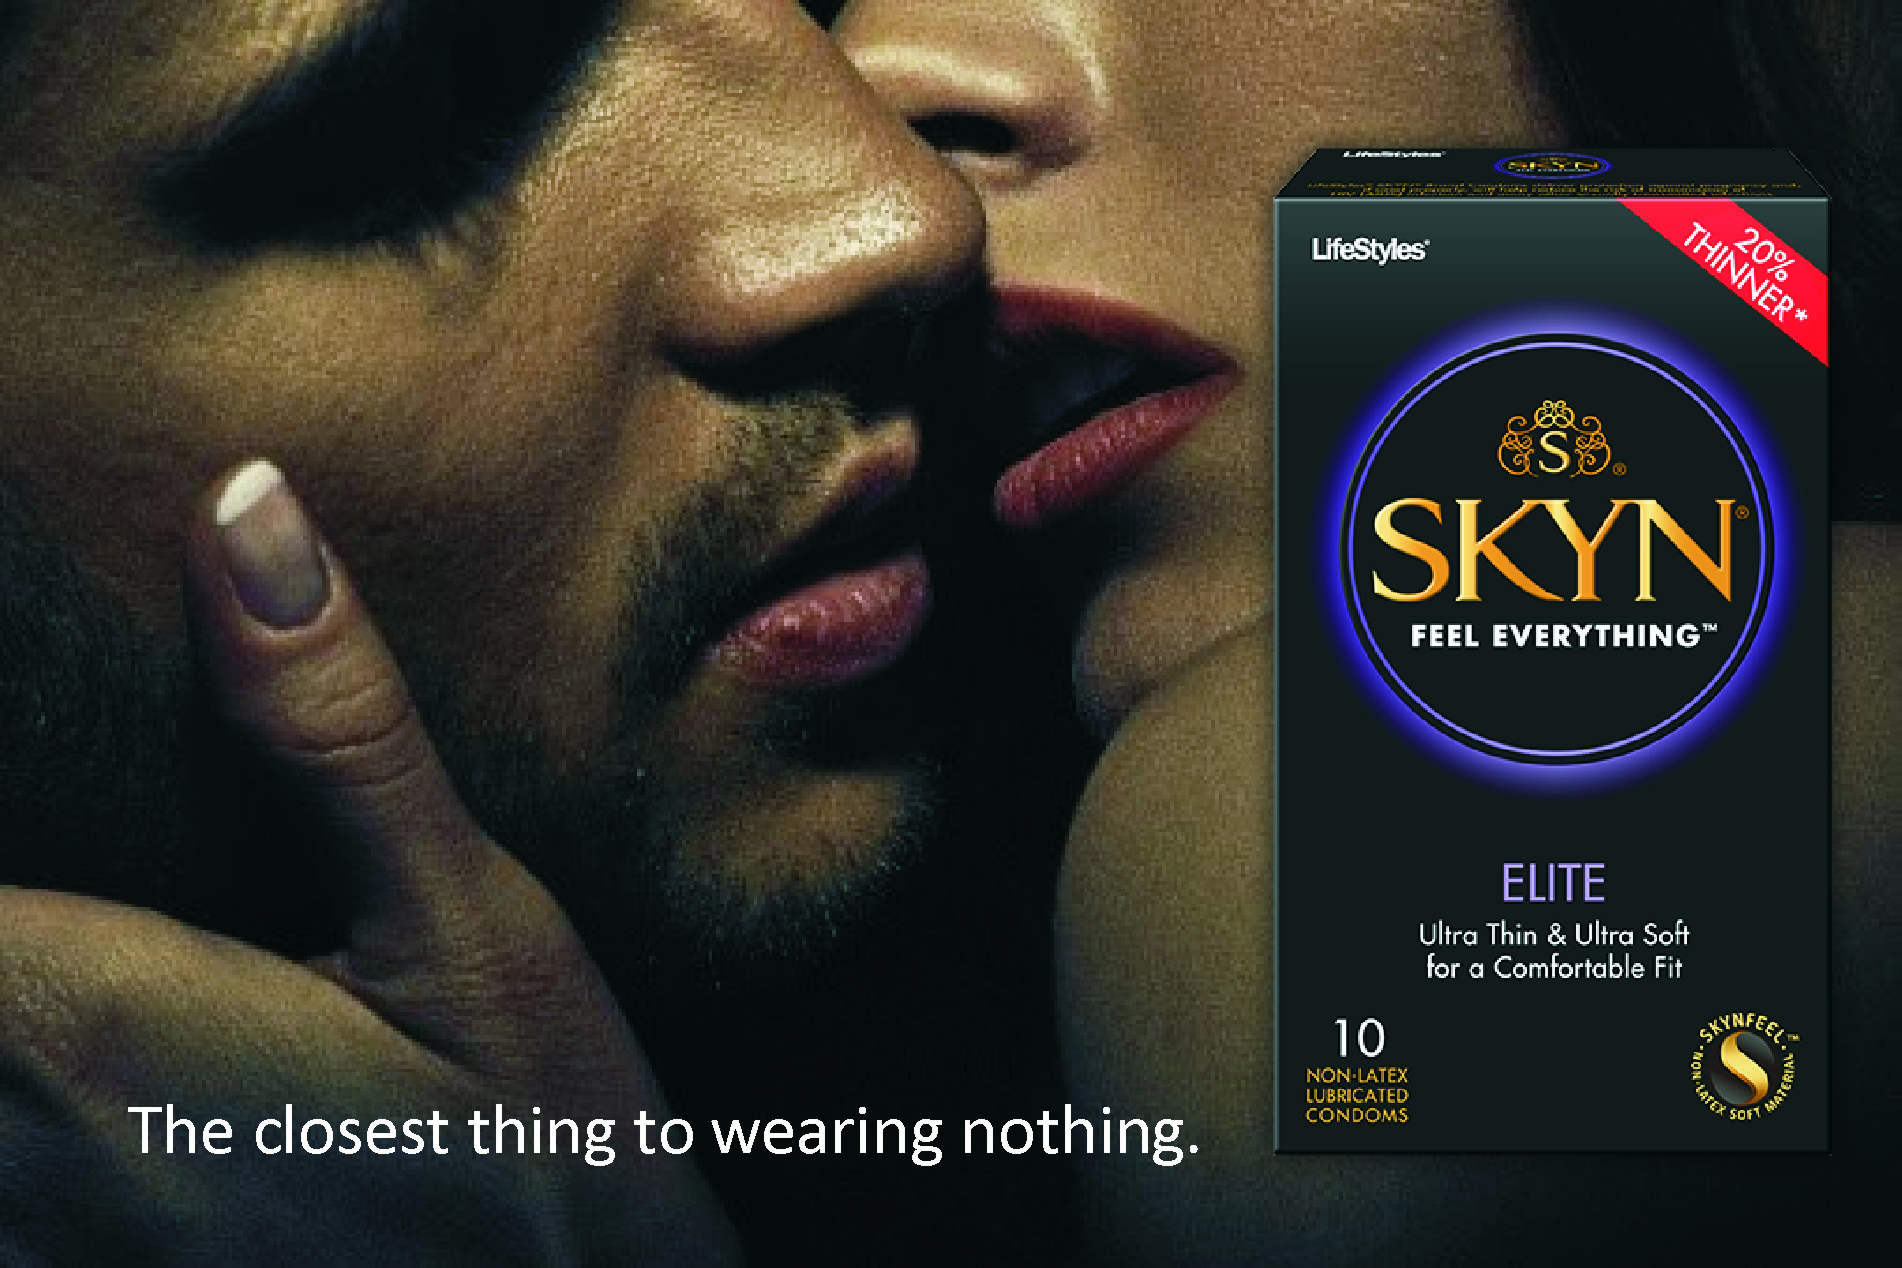 elite condoms